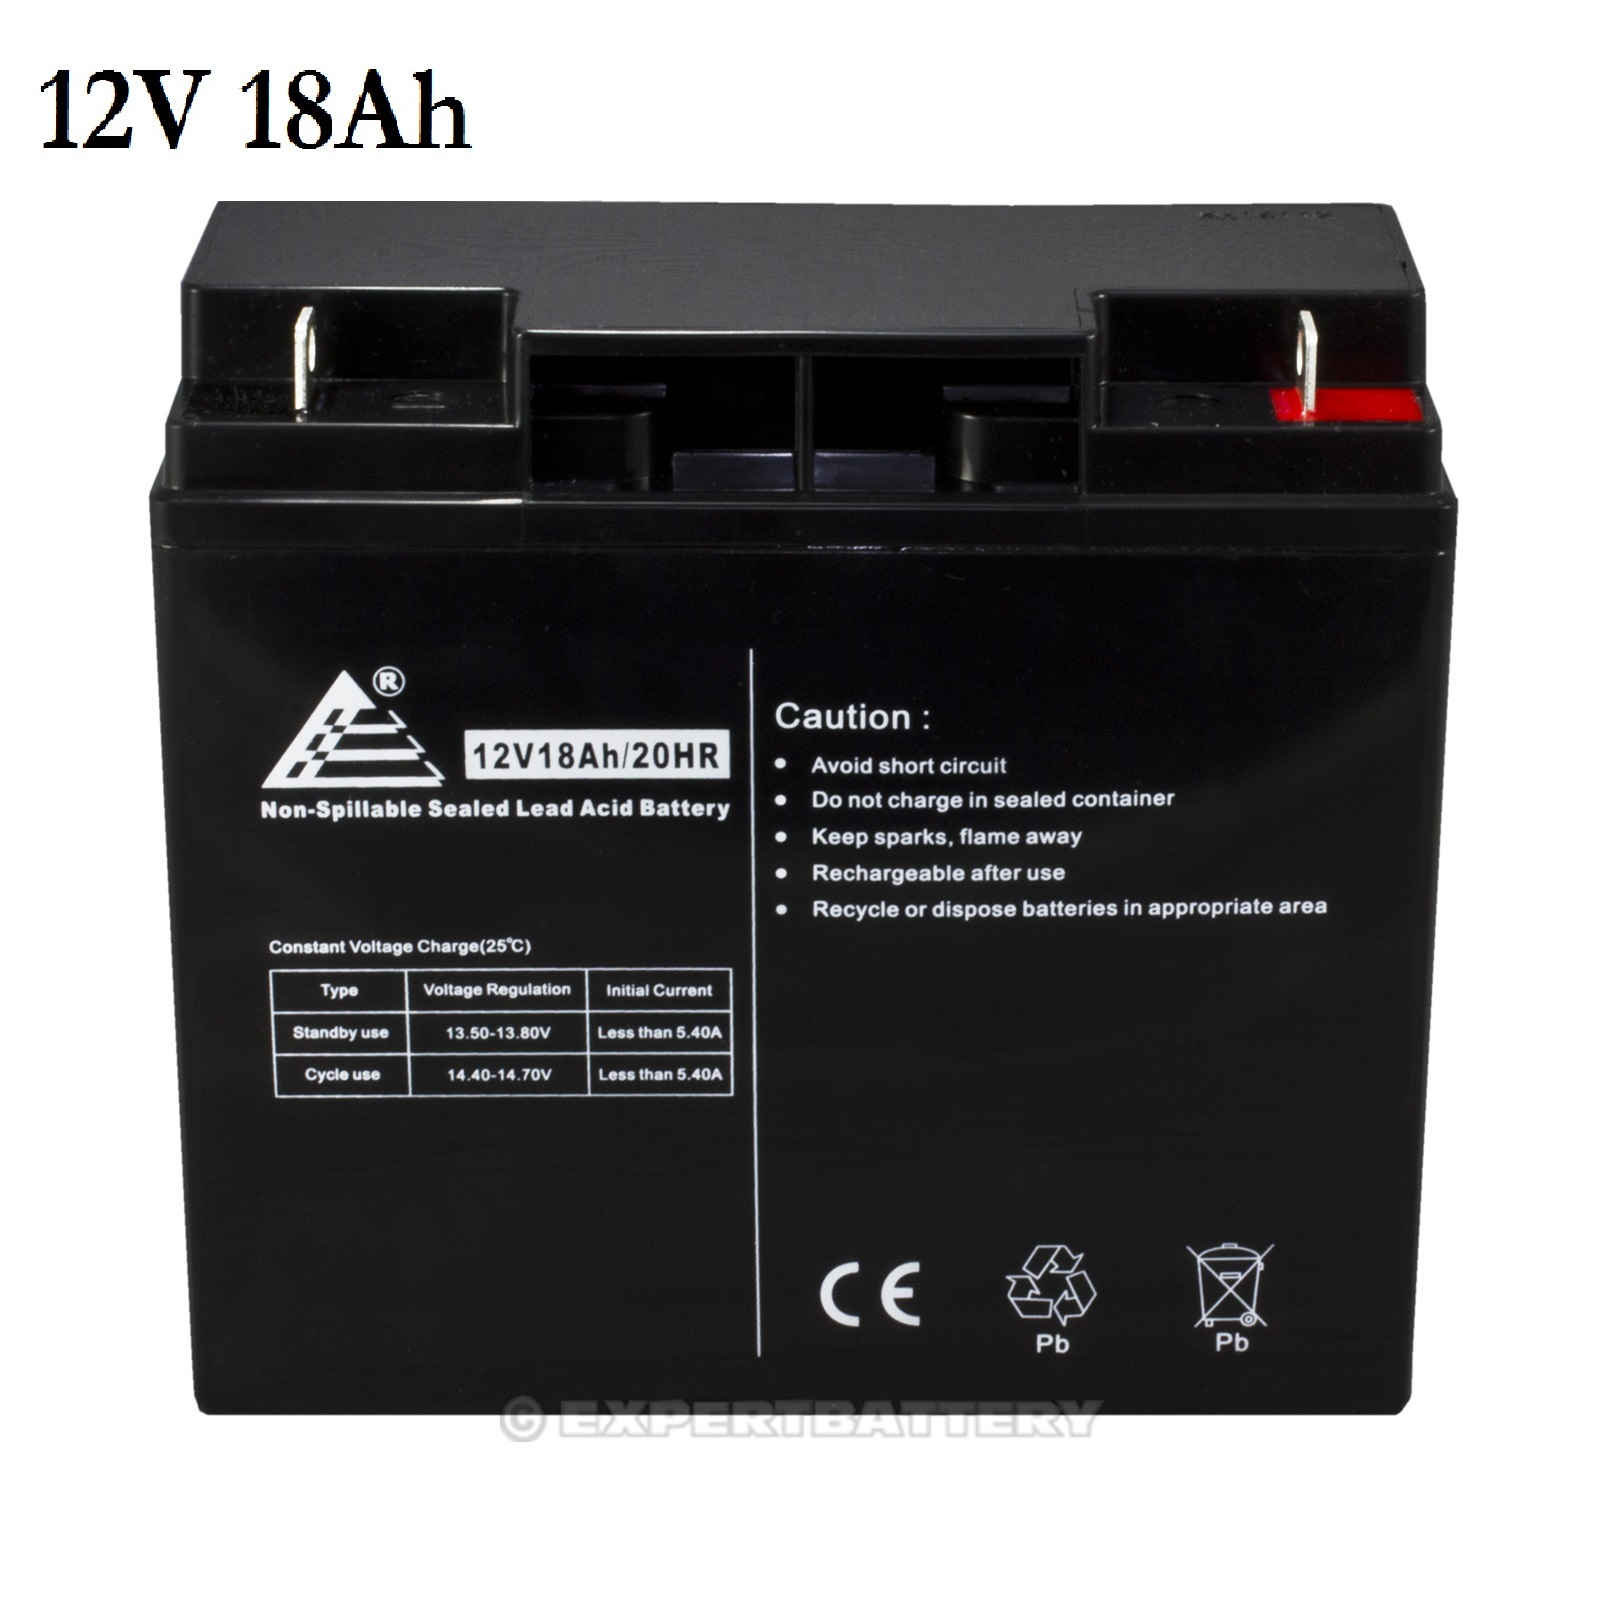 12v 18ah sealed lead acid scooter battery d5745 40648 wp18. Black Bedroom Furniture Sets. Home Design Ideas